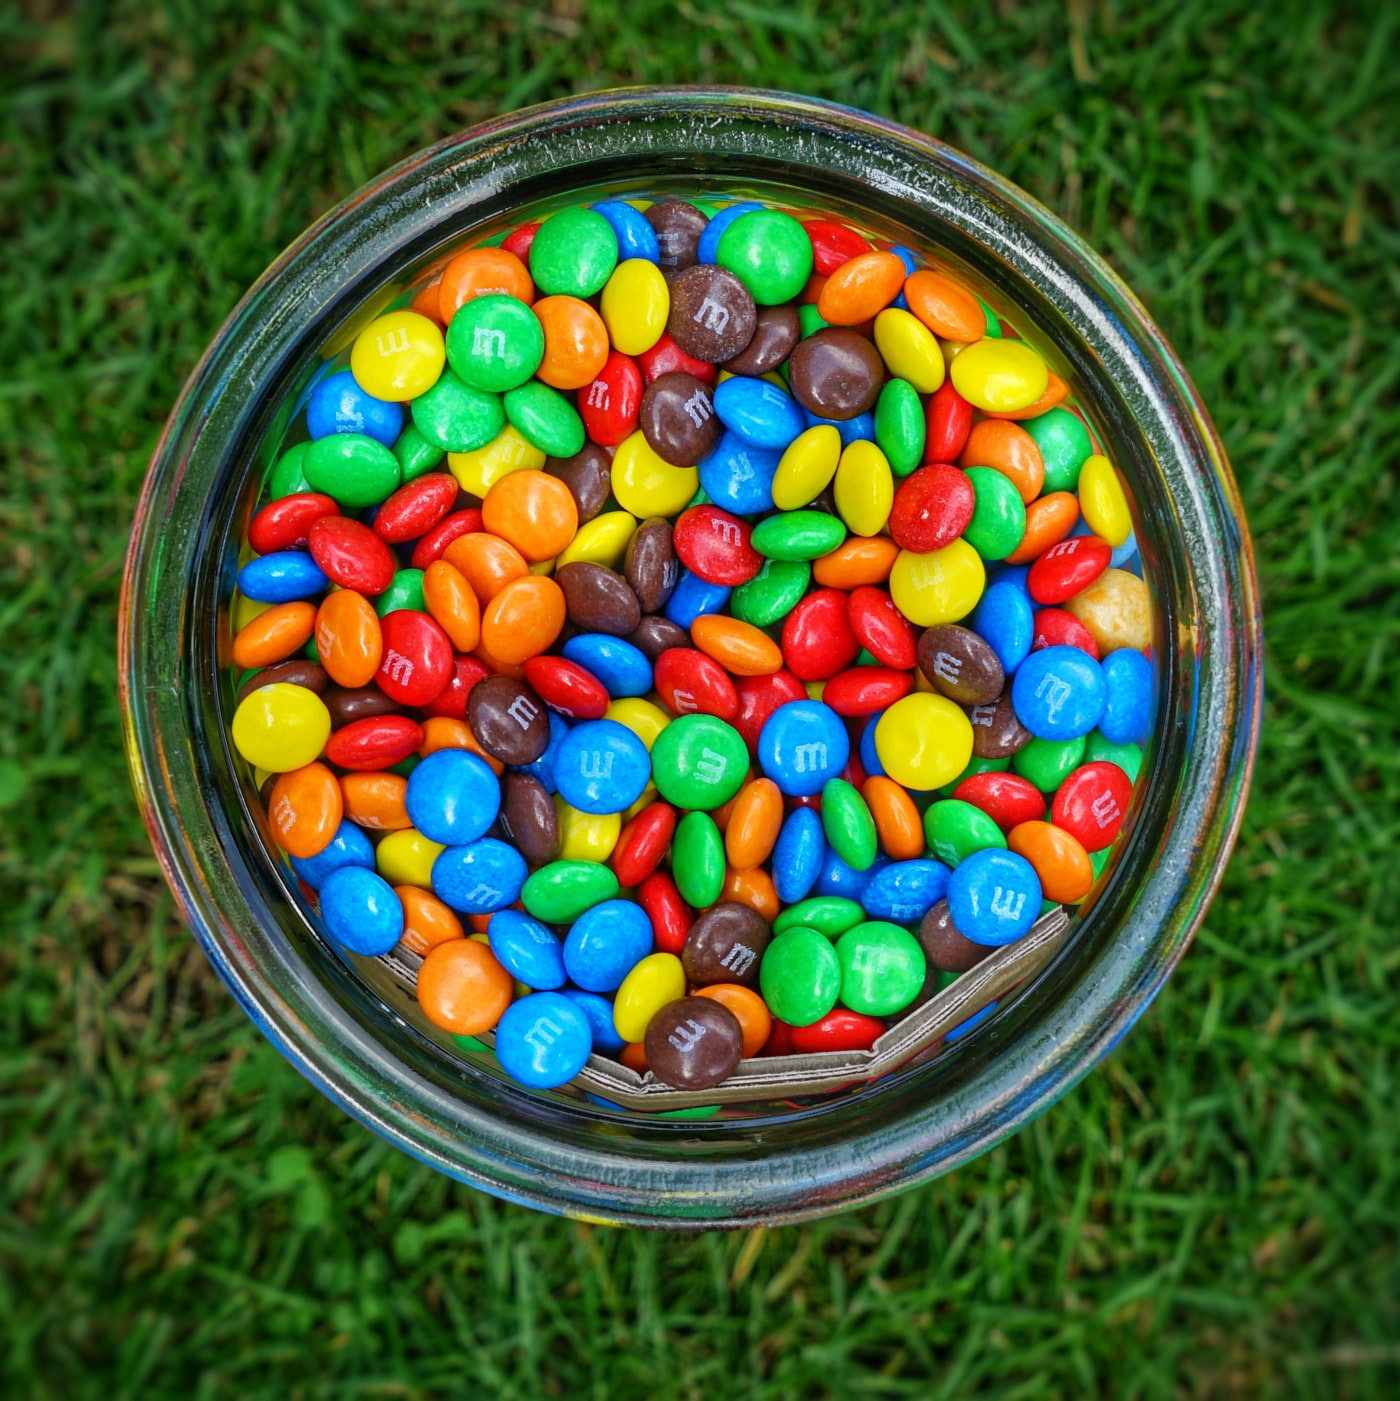 m&m chocolates in a glass jar